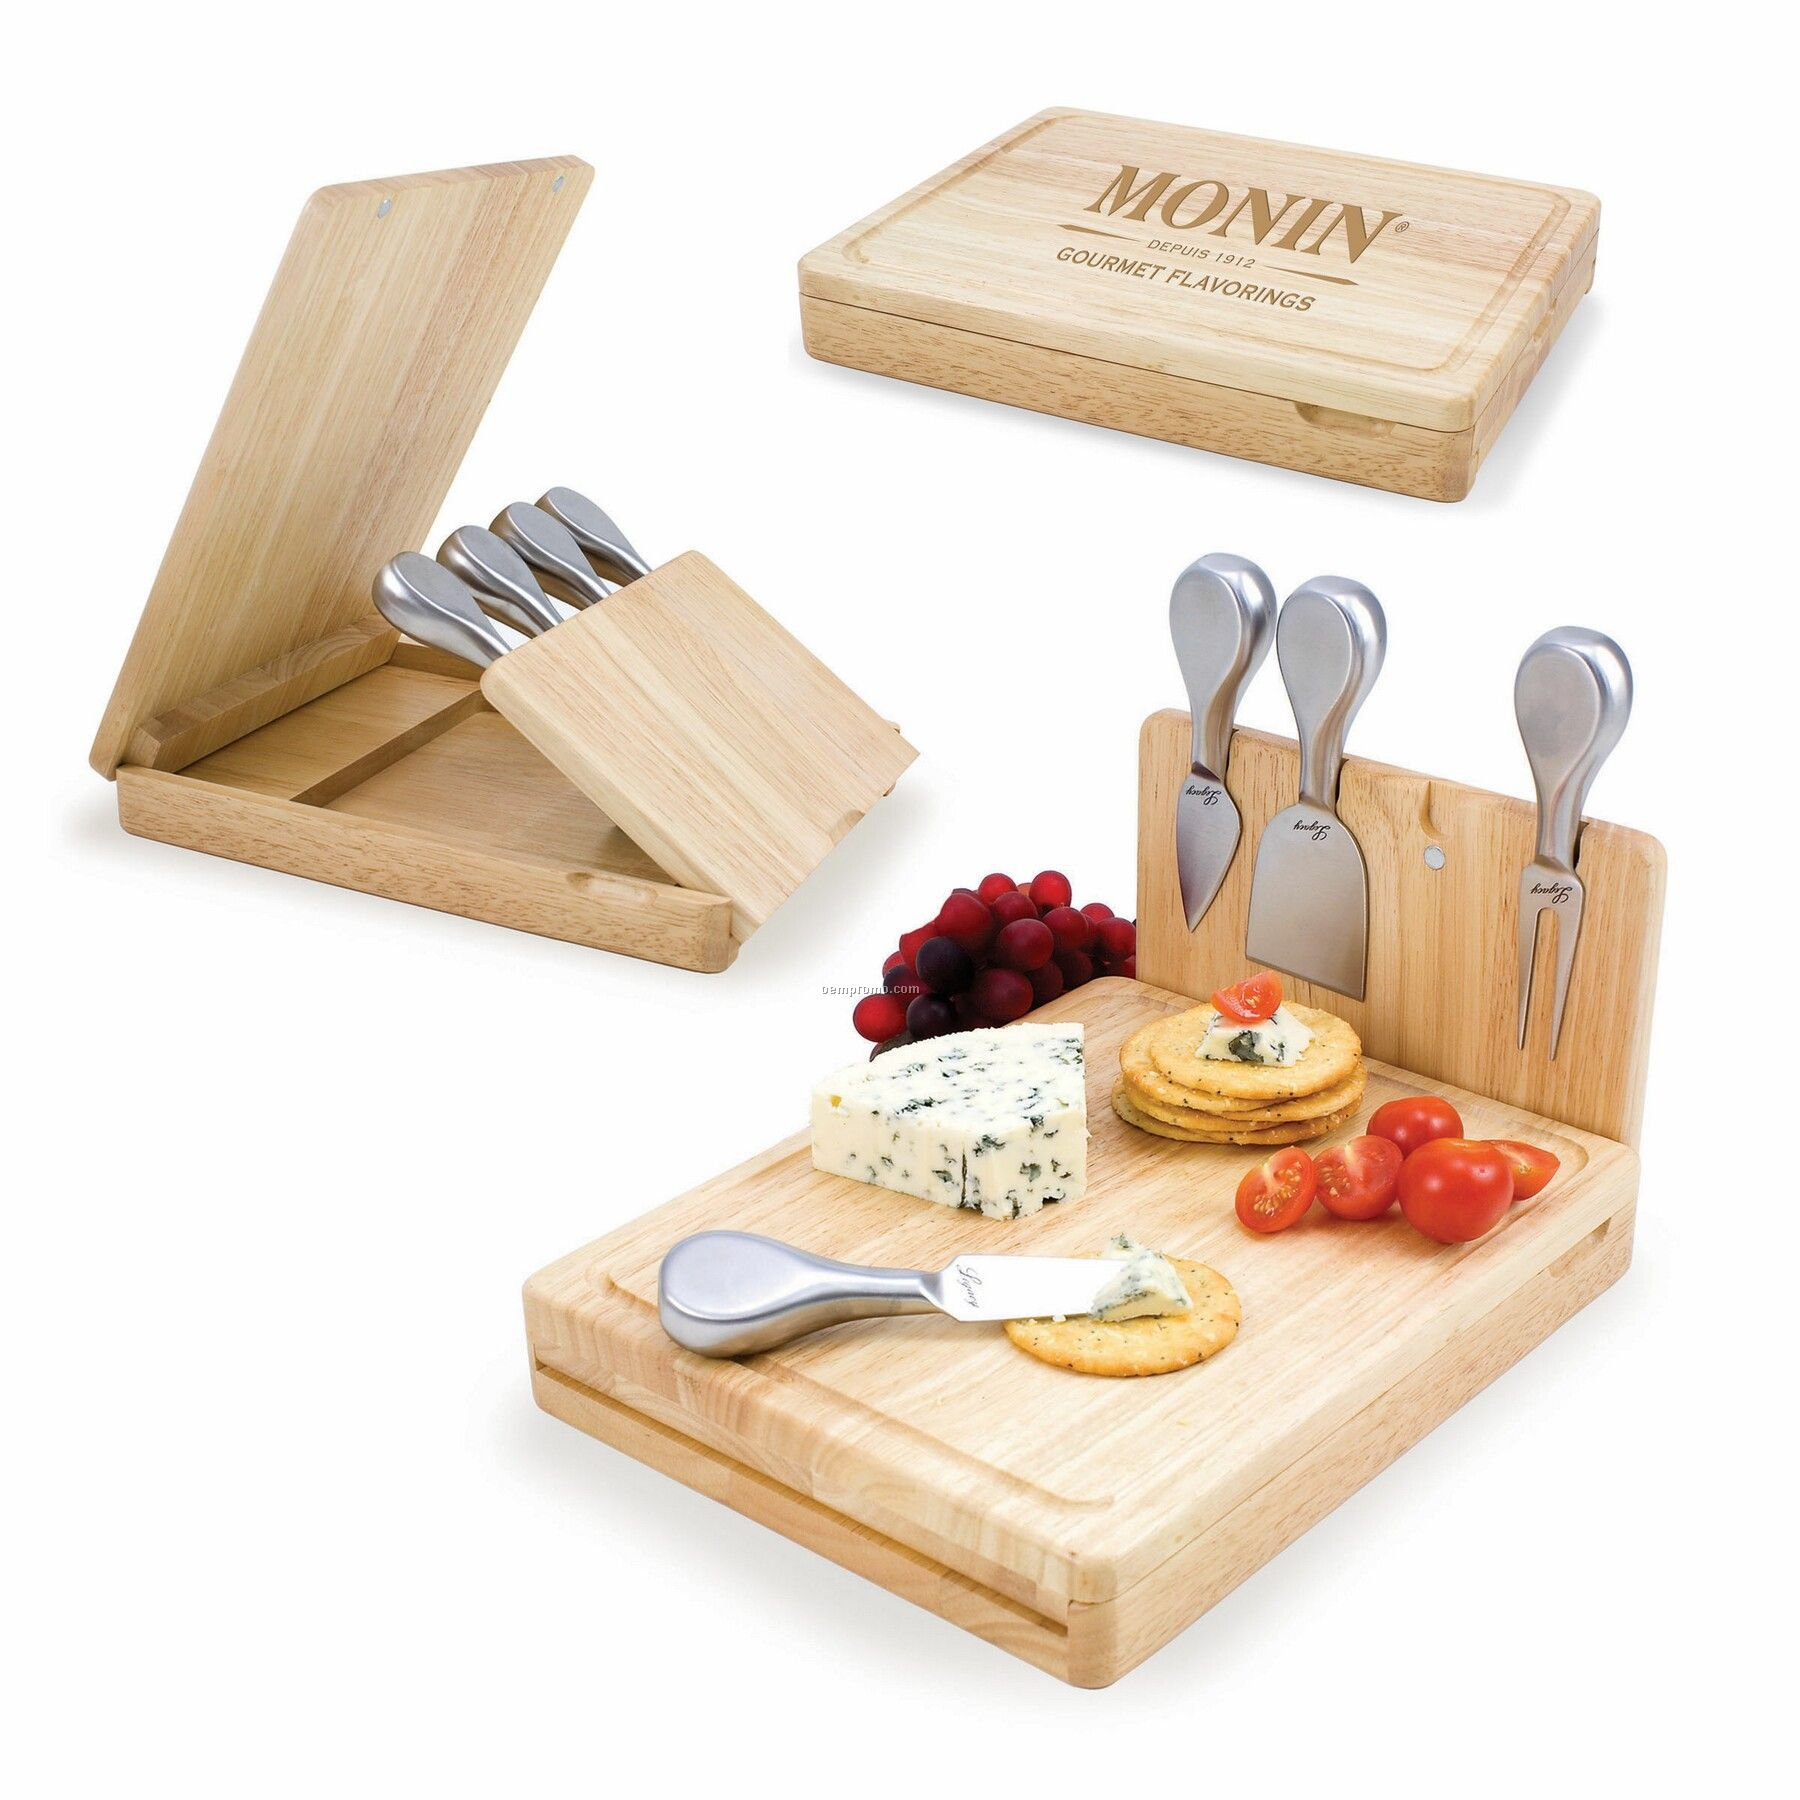 Asiago Rubber Wood Cutting Board W/ Tuck Away Panel & 4 Cheese Tools